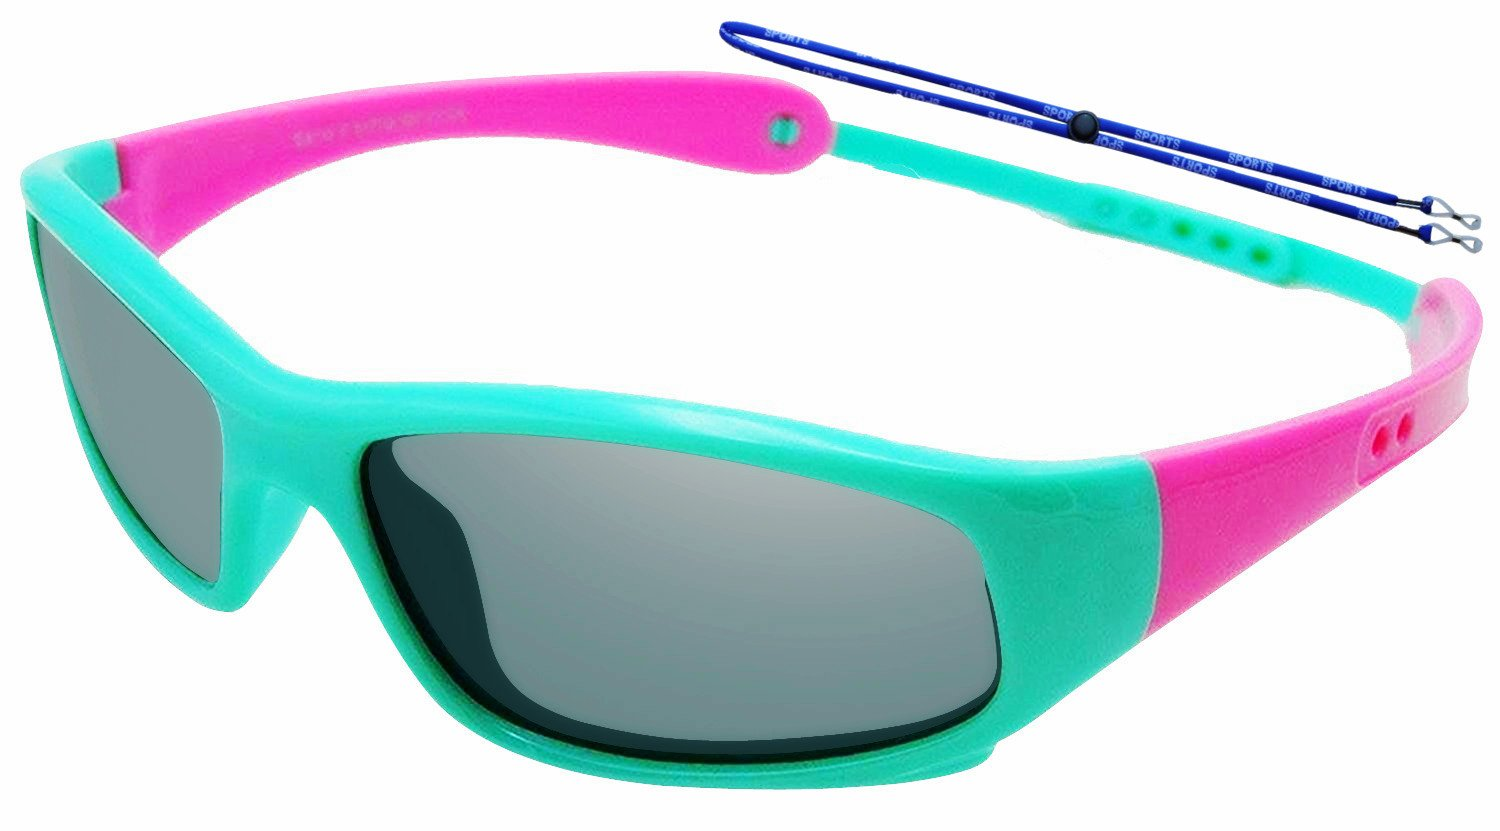 COOLSOME Flexible Rubber Kids Polarized UV Protection Sunglasses for Boys Girls 2-7 Years Old (Pink Green)